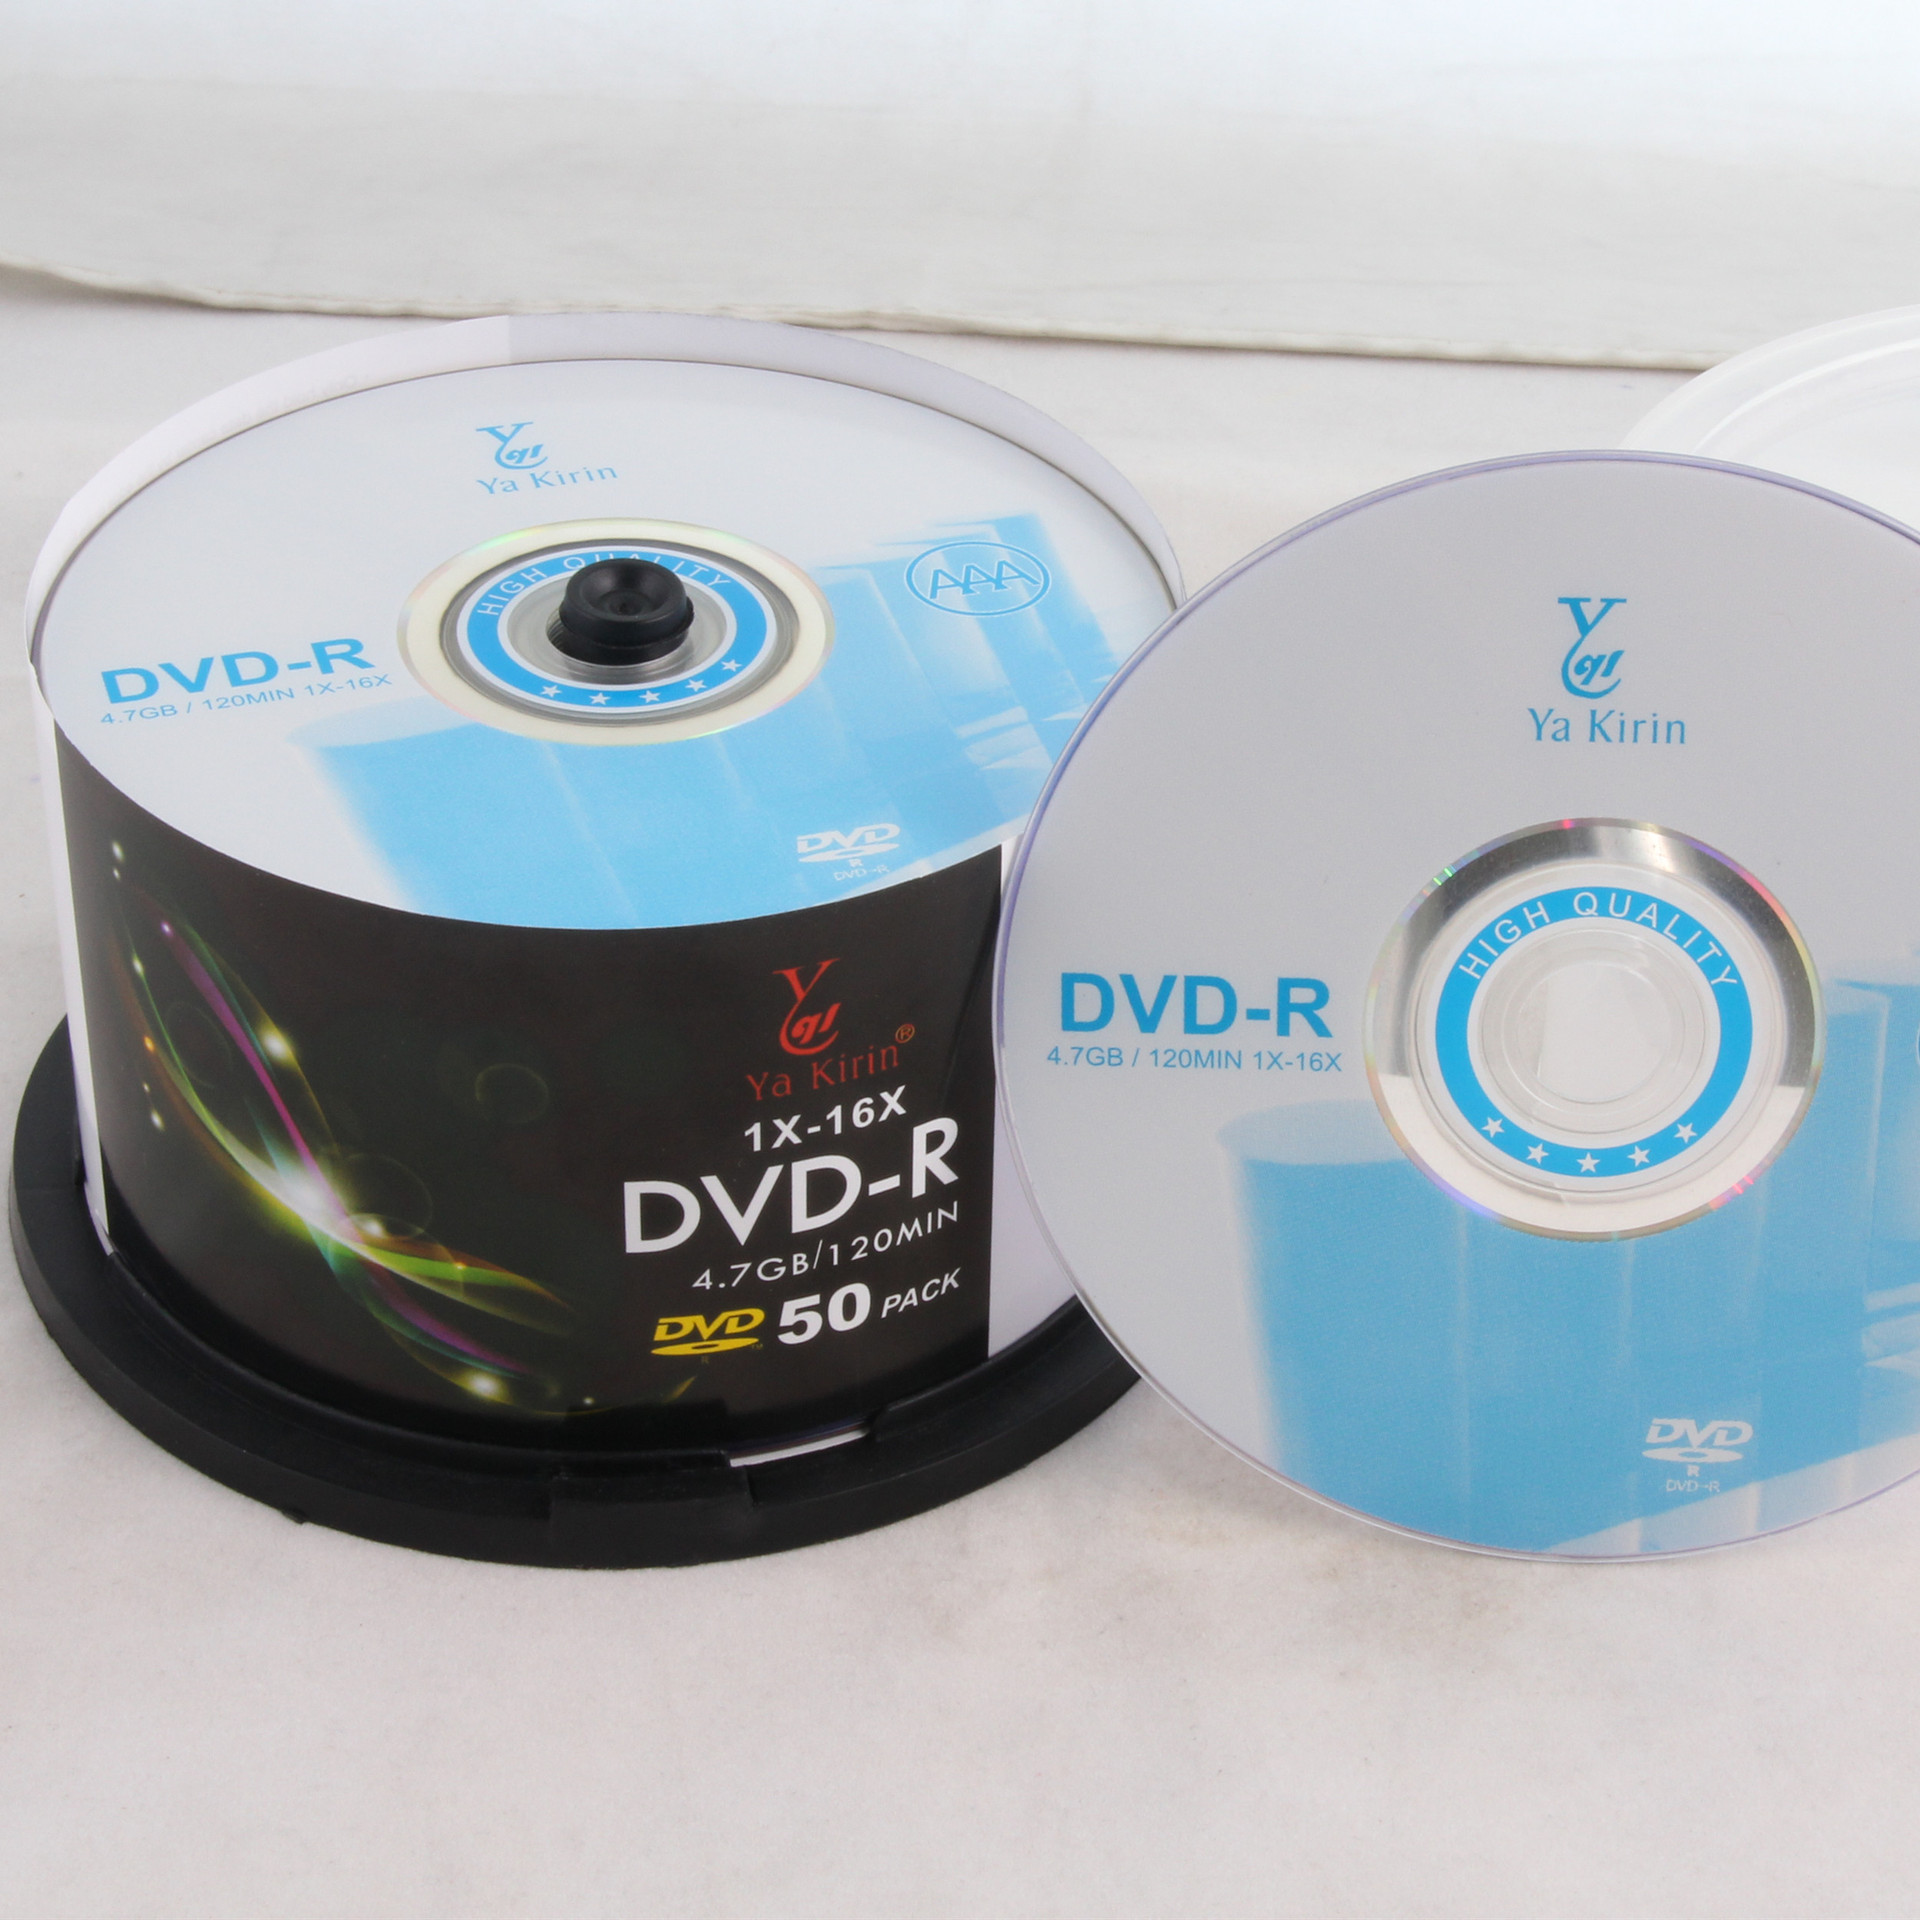 CD-R 52X 700MB DVD-R DVD+R 4.7GB 8X 16X 可刻录空白光盘 碟片